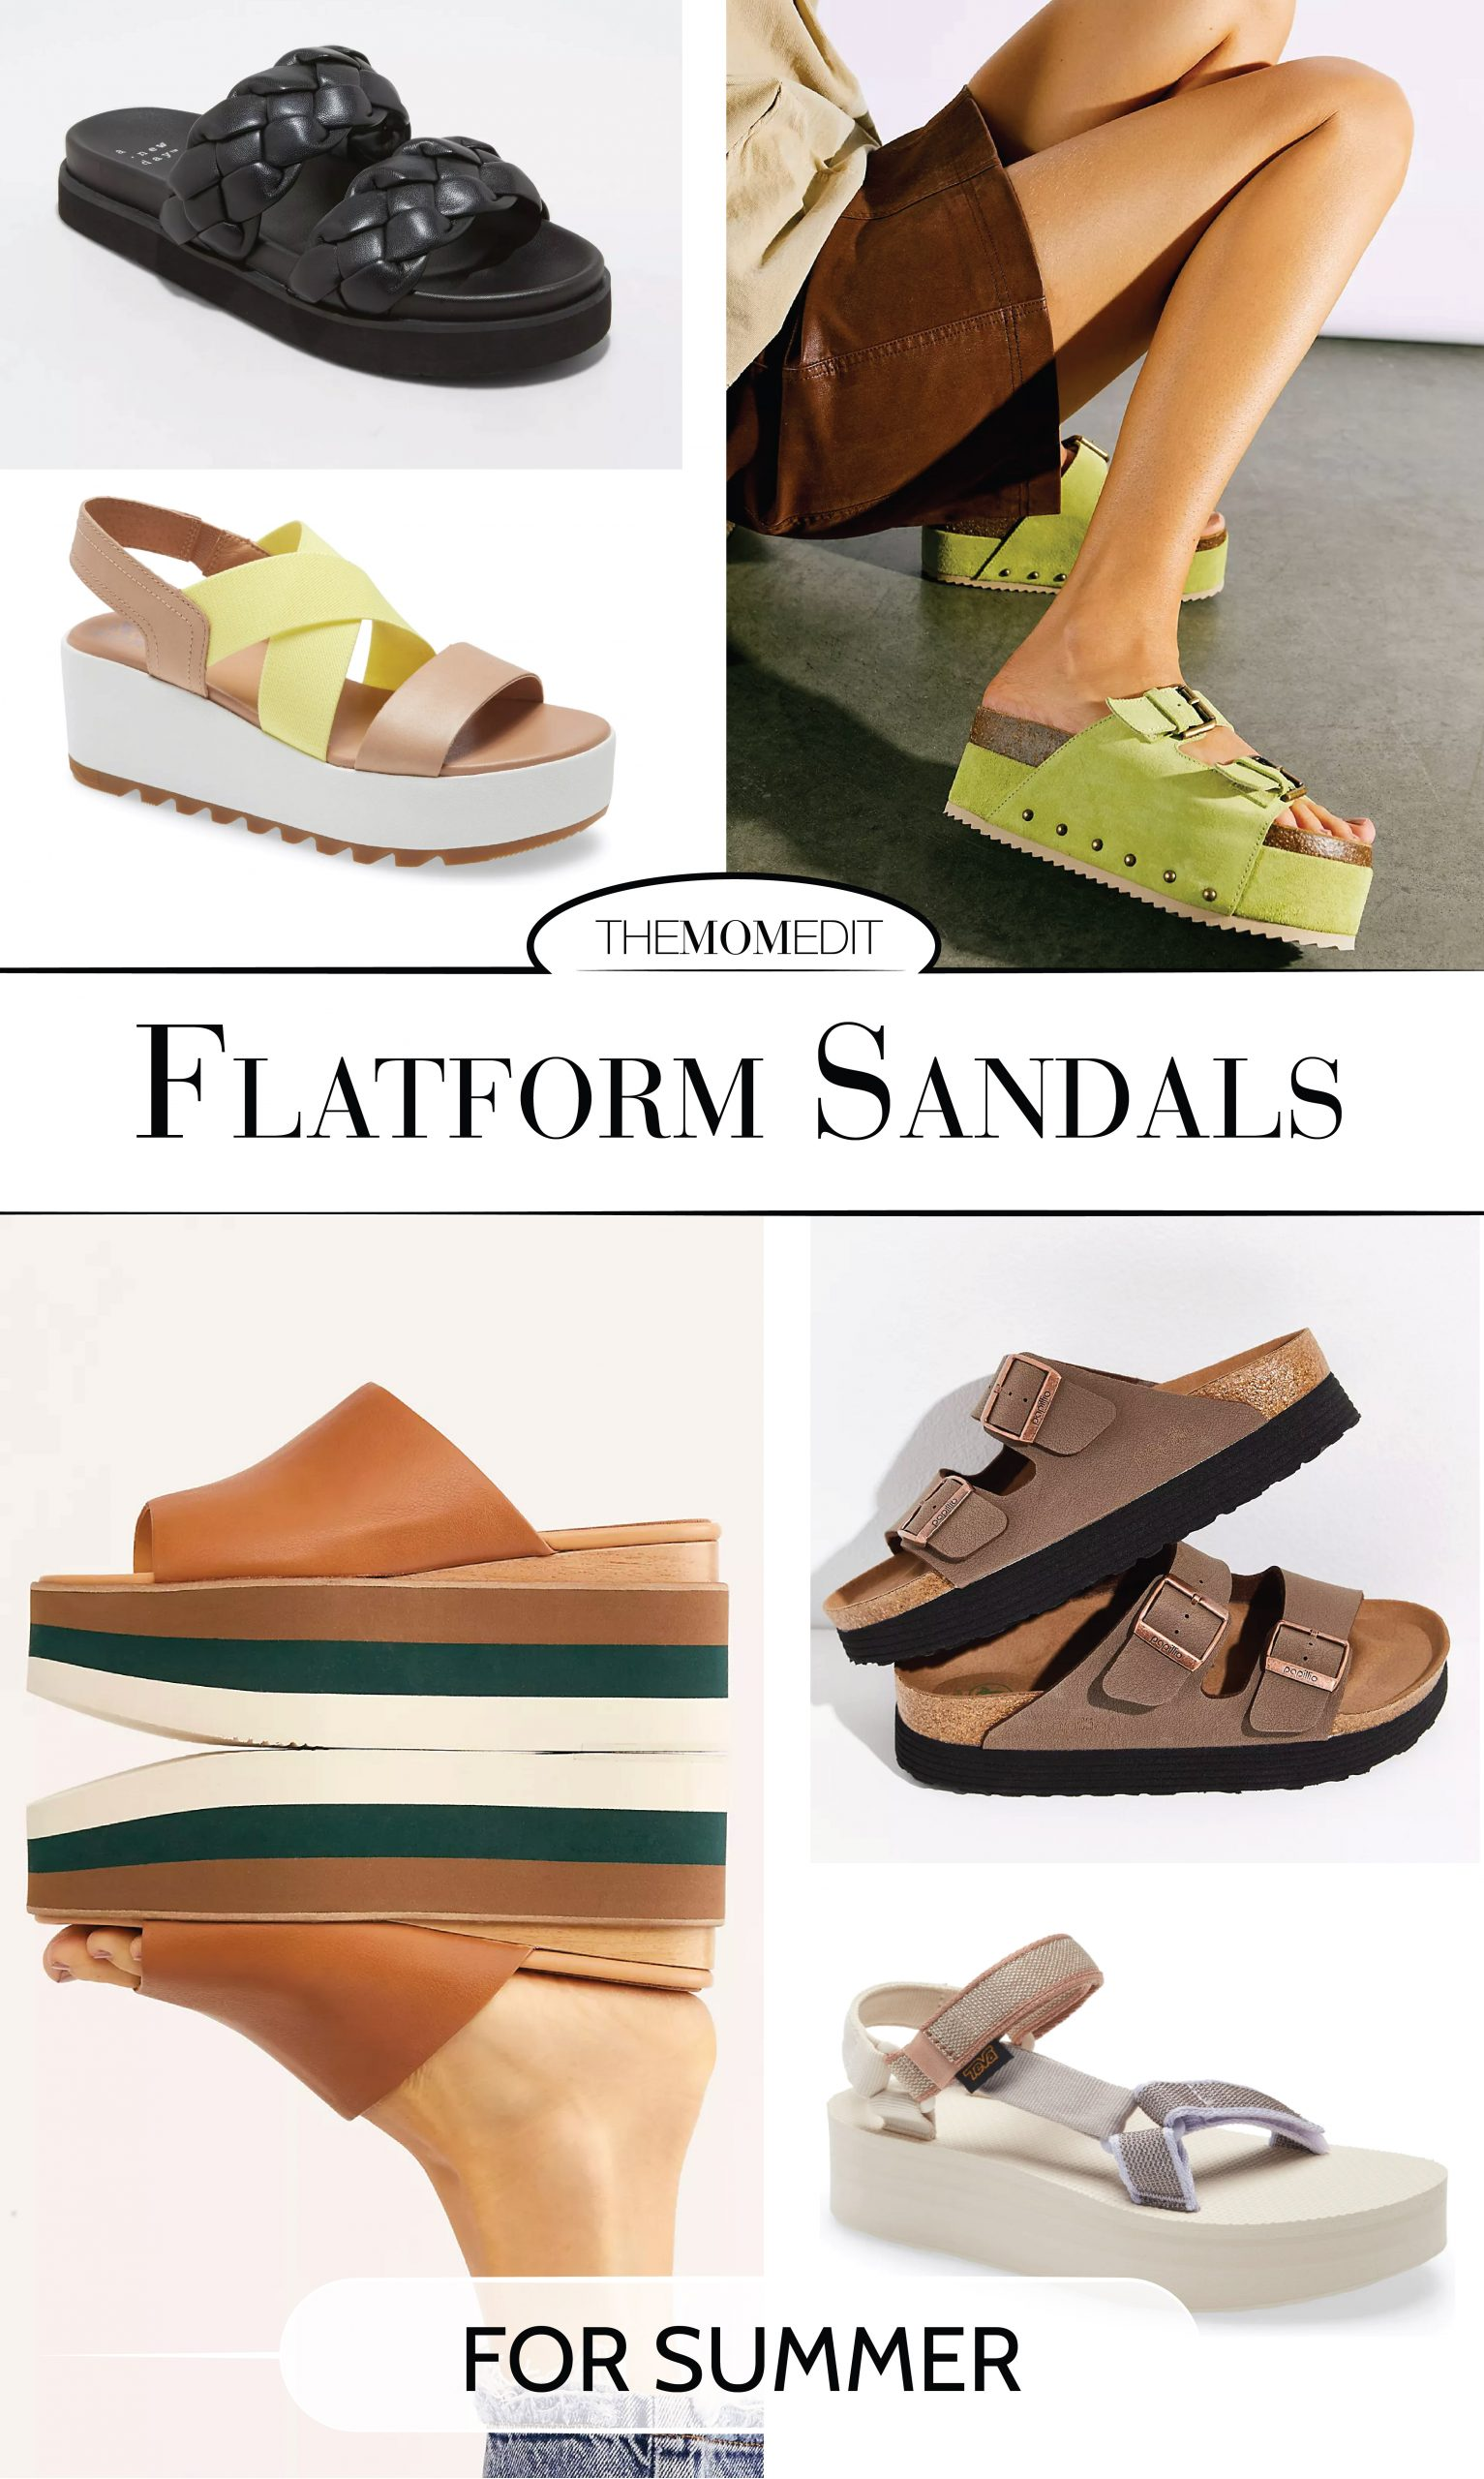 Flatform sandals are super versatile. I love pairing them w/ straight-leg jeans, flirty dresses + short shorts. If you're a fan of '70s vibes, pair 'em w/ flare jeans.